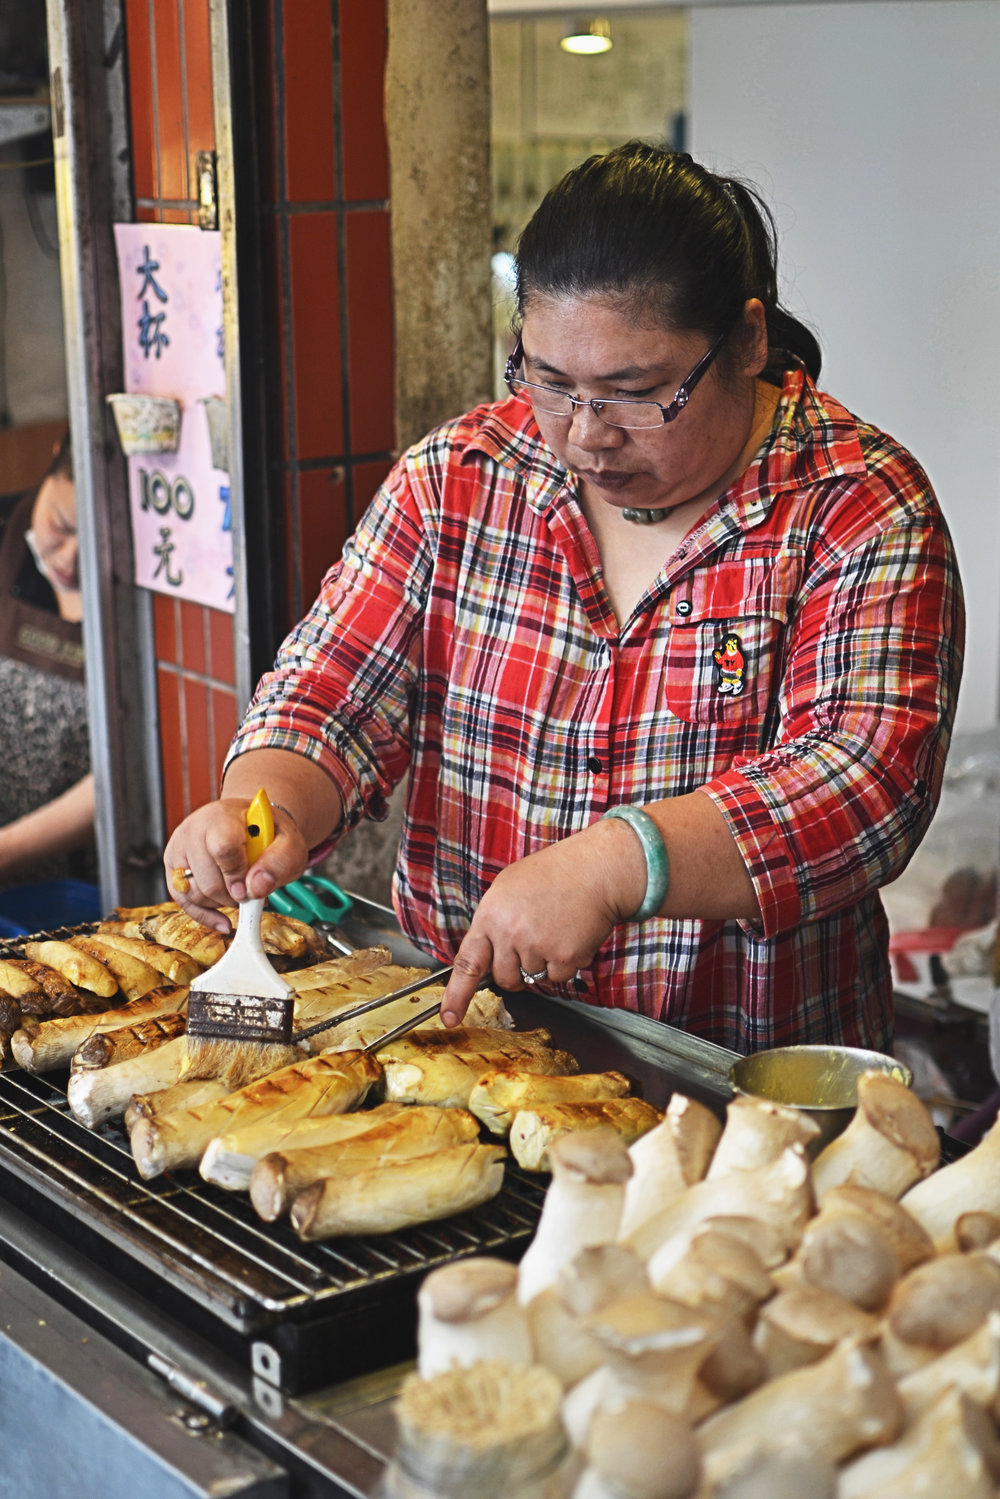 A woman grilling mushrooms at Jiufen, Taiwan